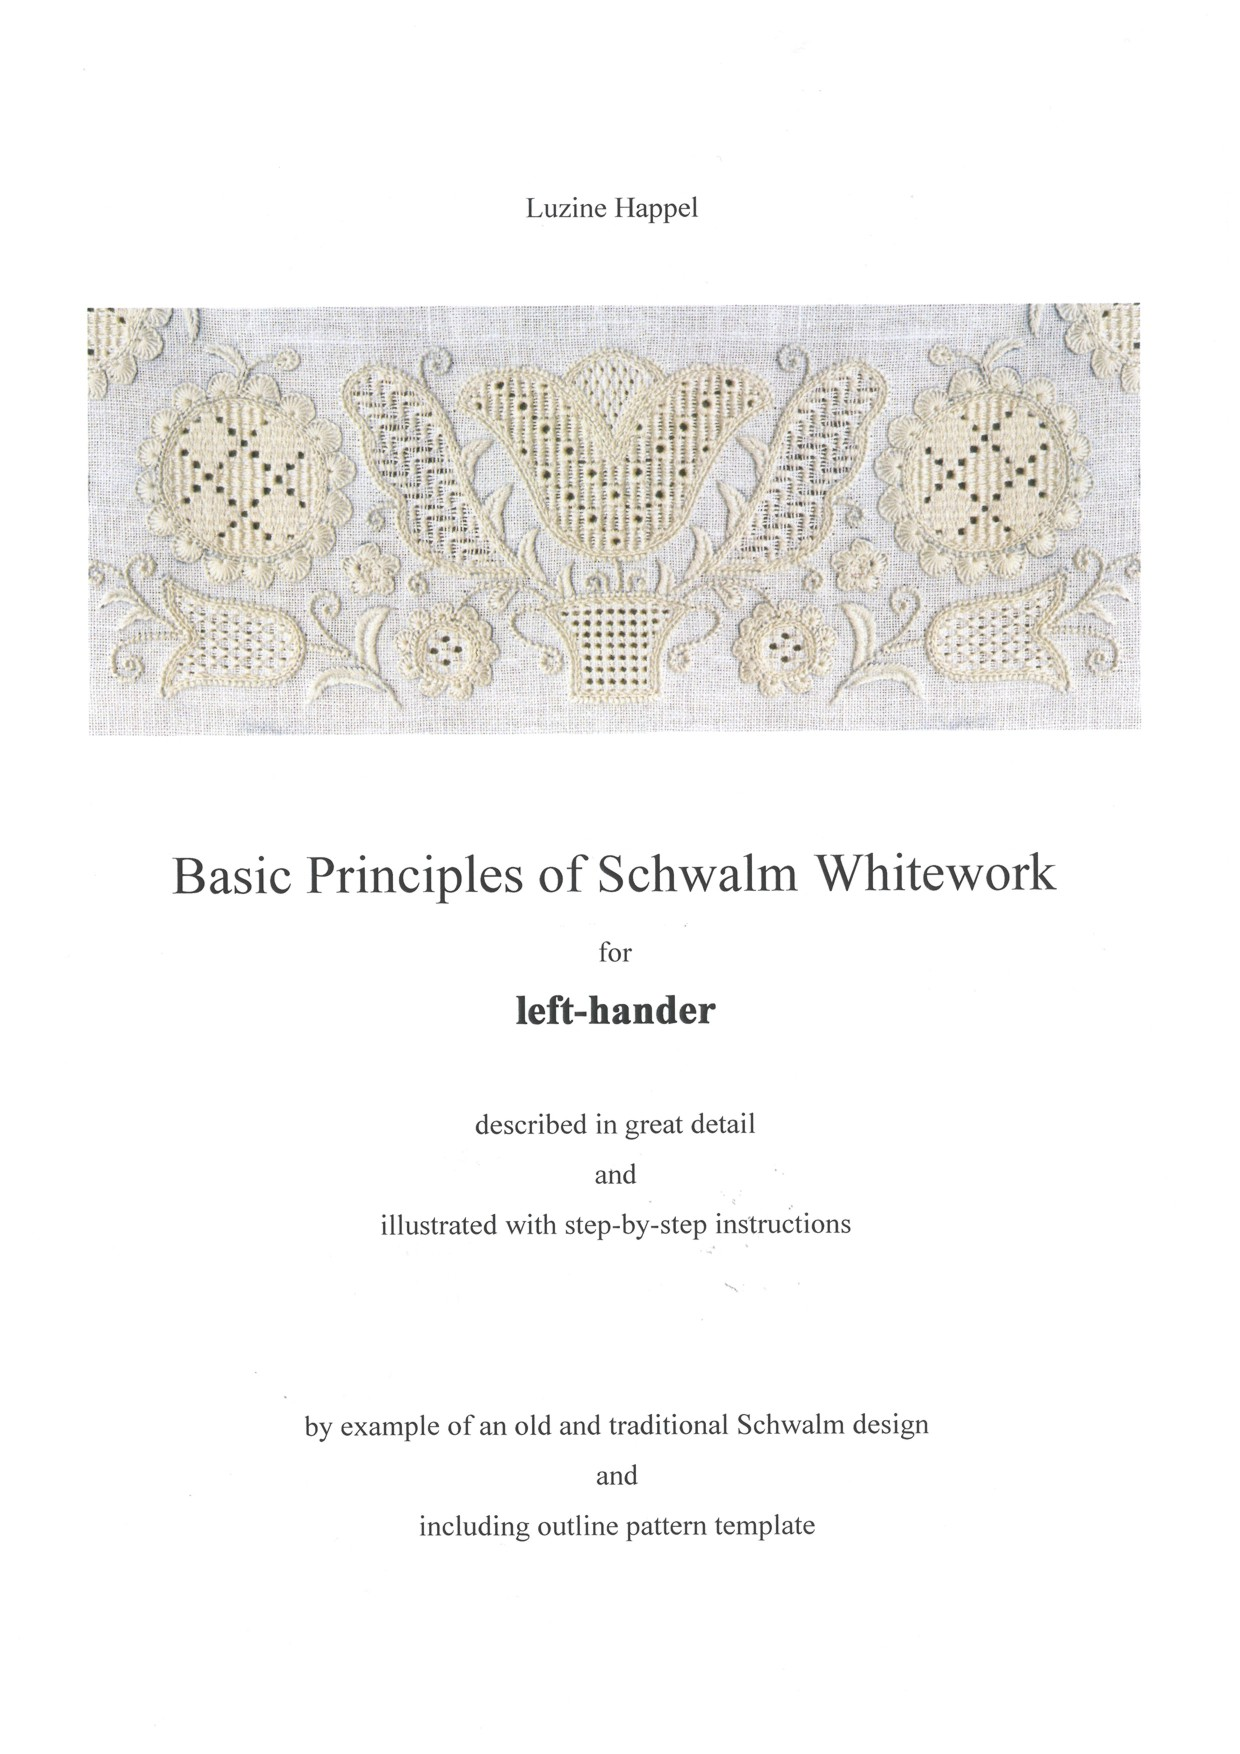 Basic Principles of Schwalm Whitework - for left-handed 1 / 8